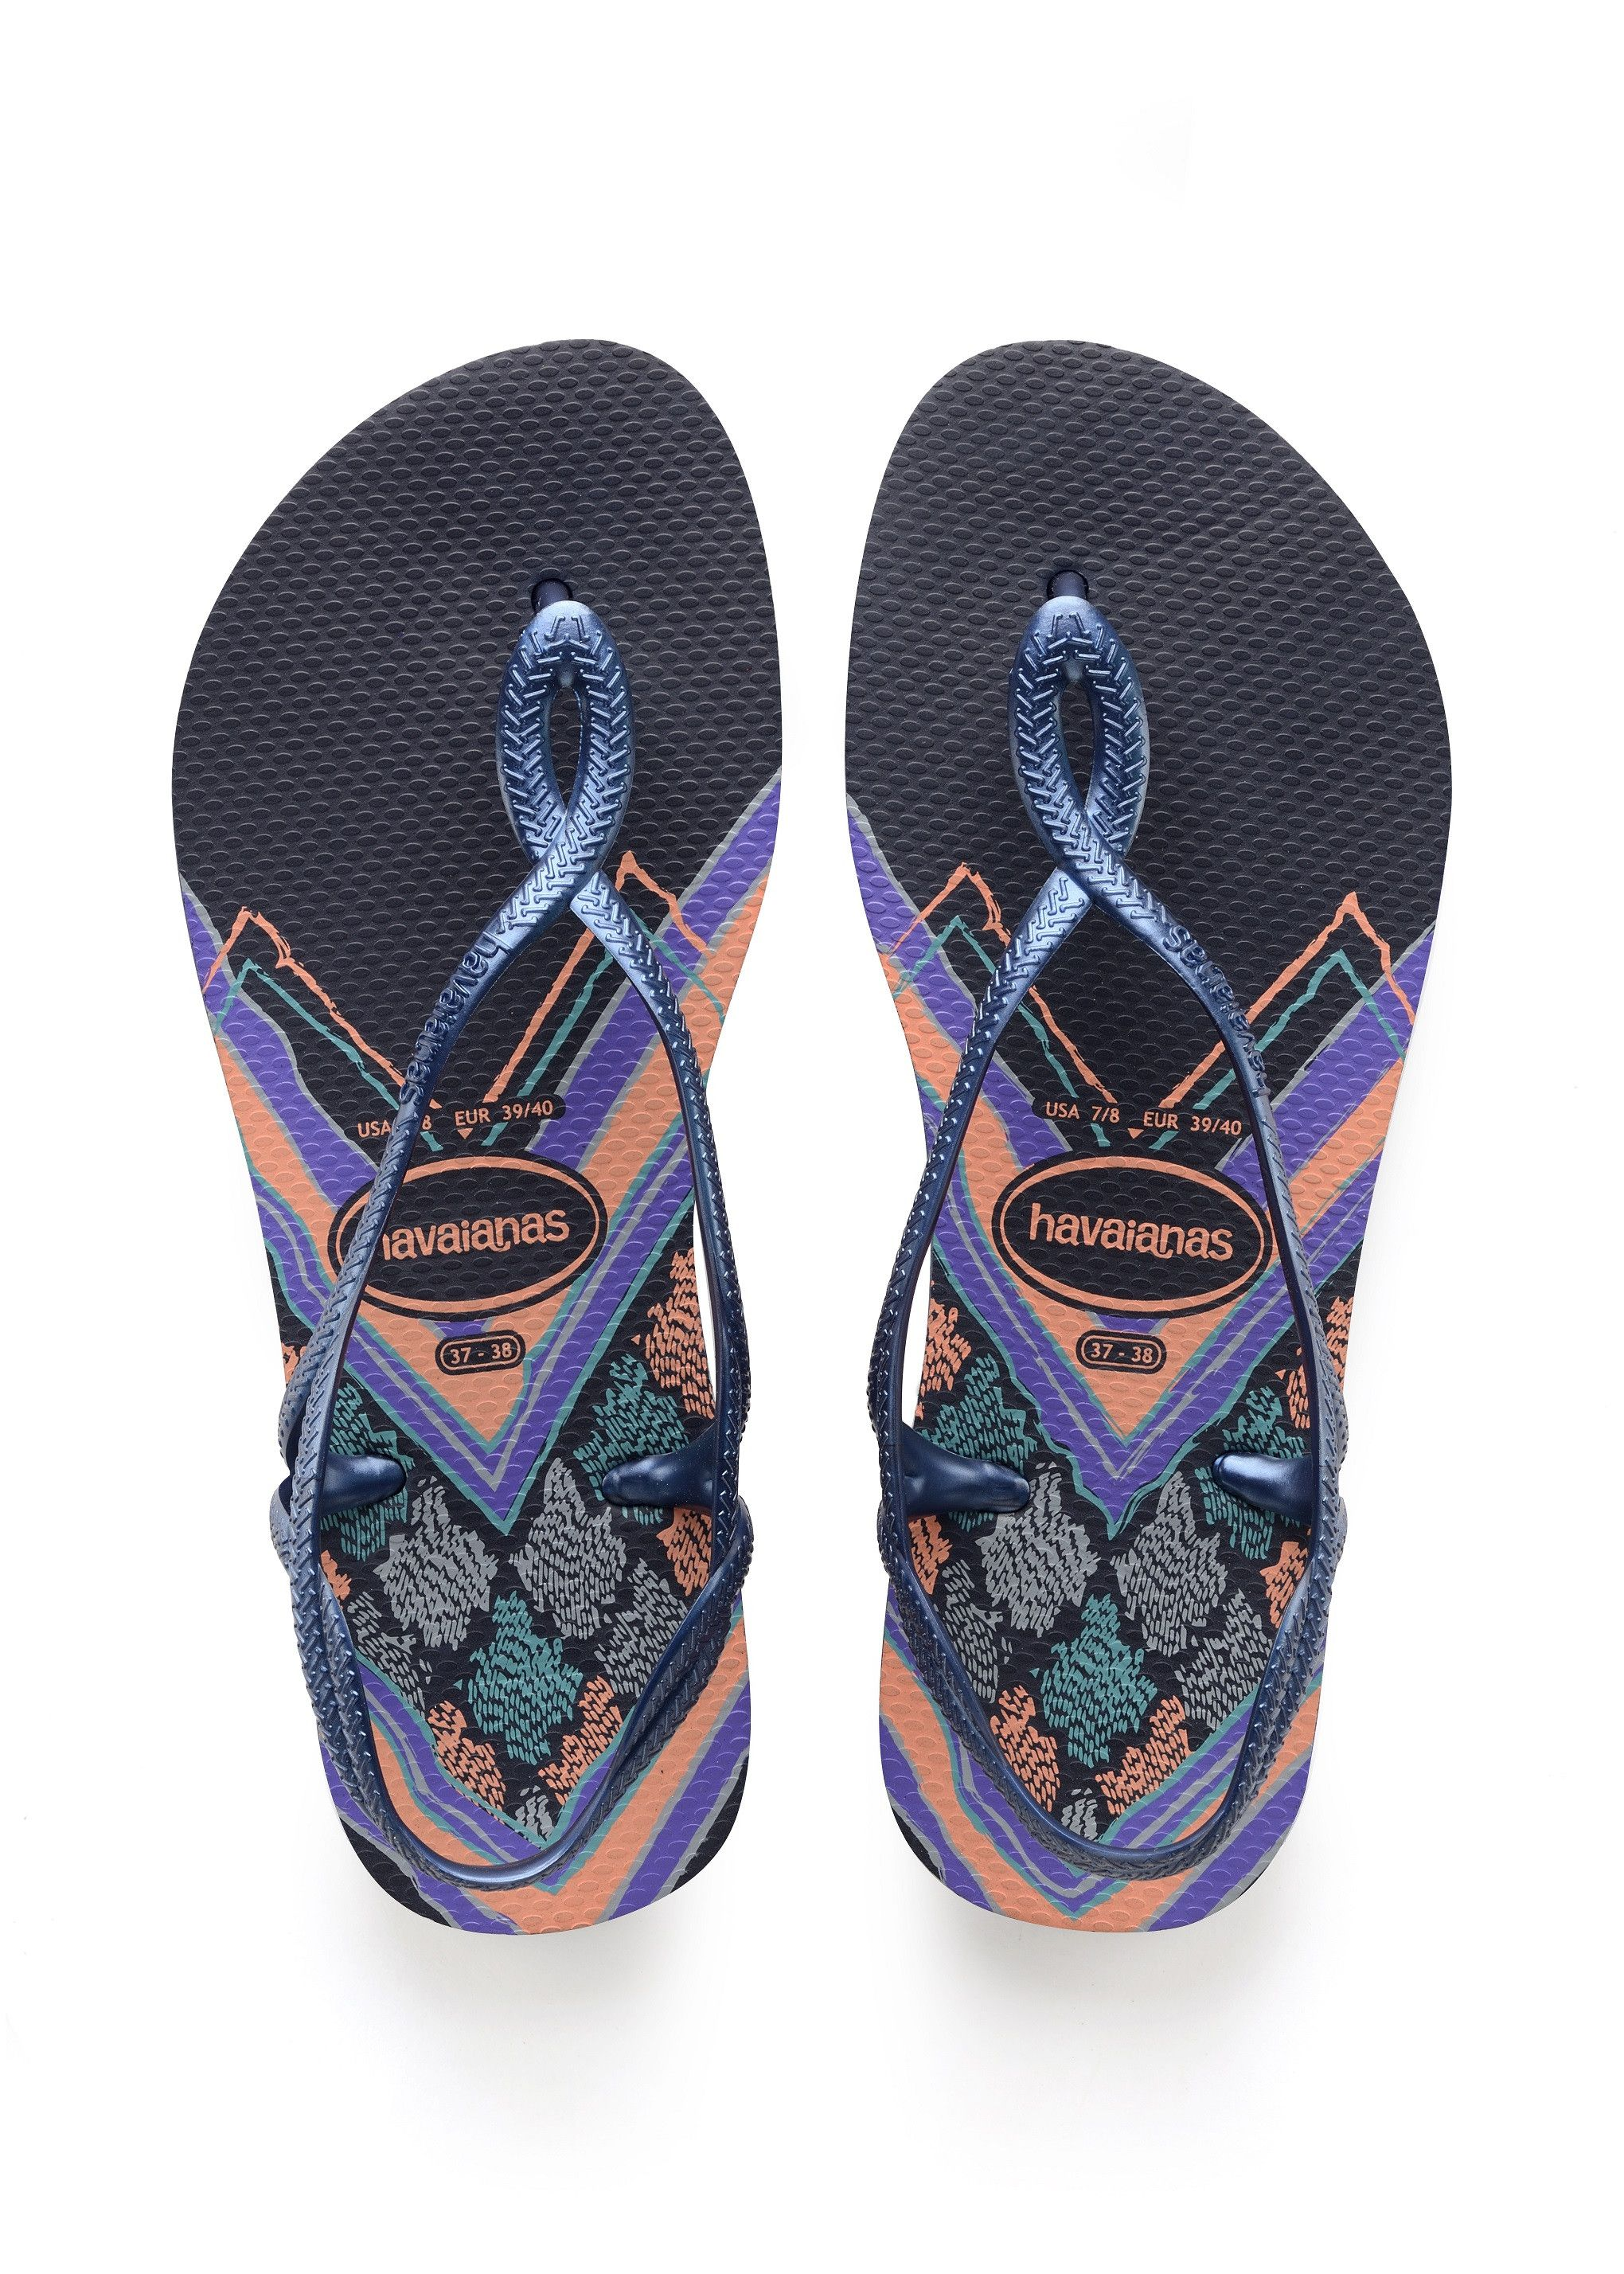 1c05654c915 Havaianas Luna Print Sandal Navy Blue Price From  40